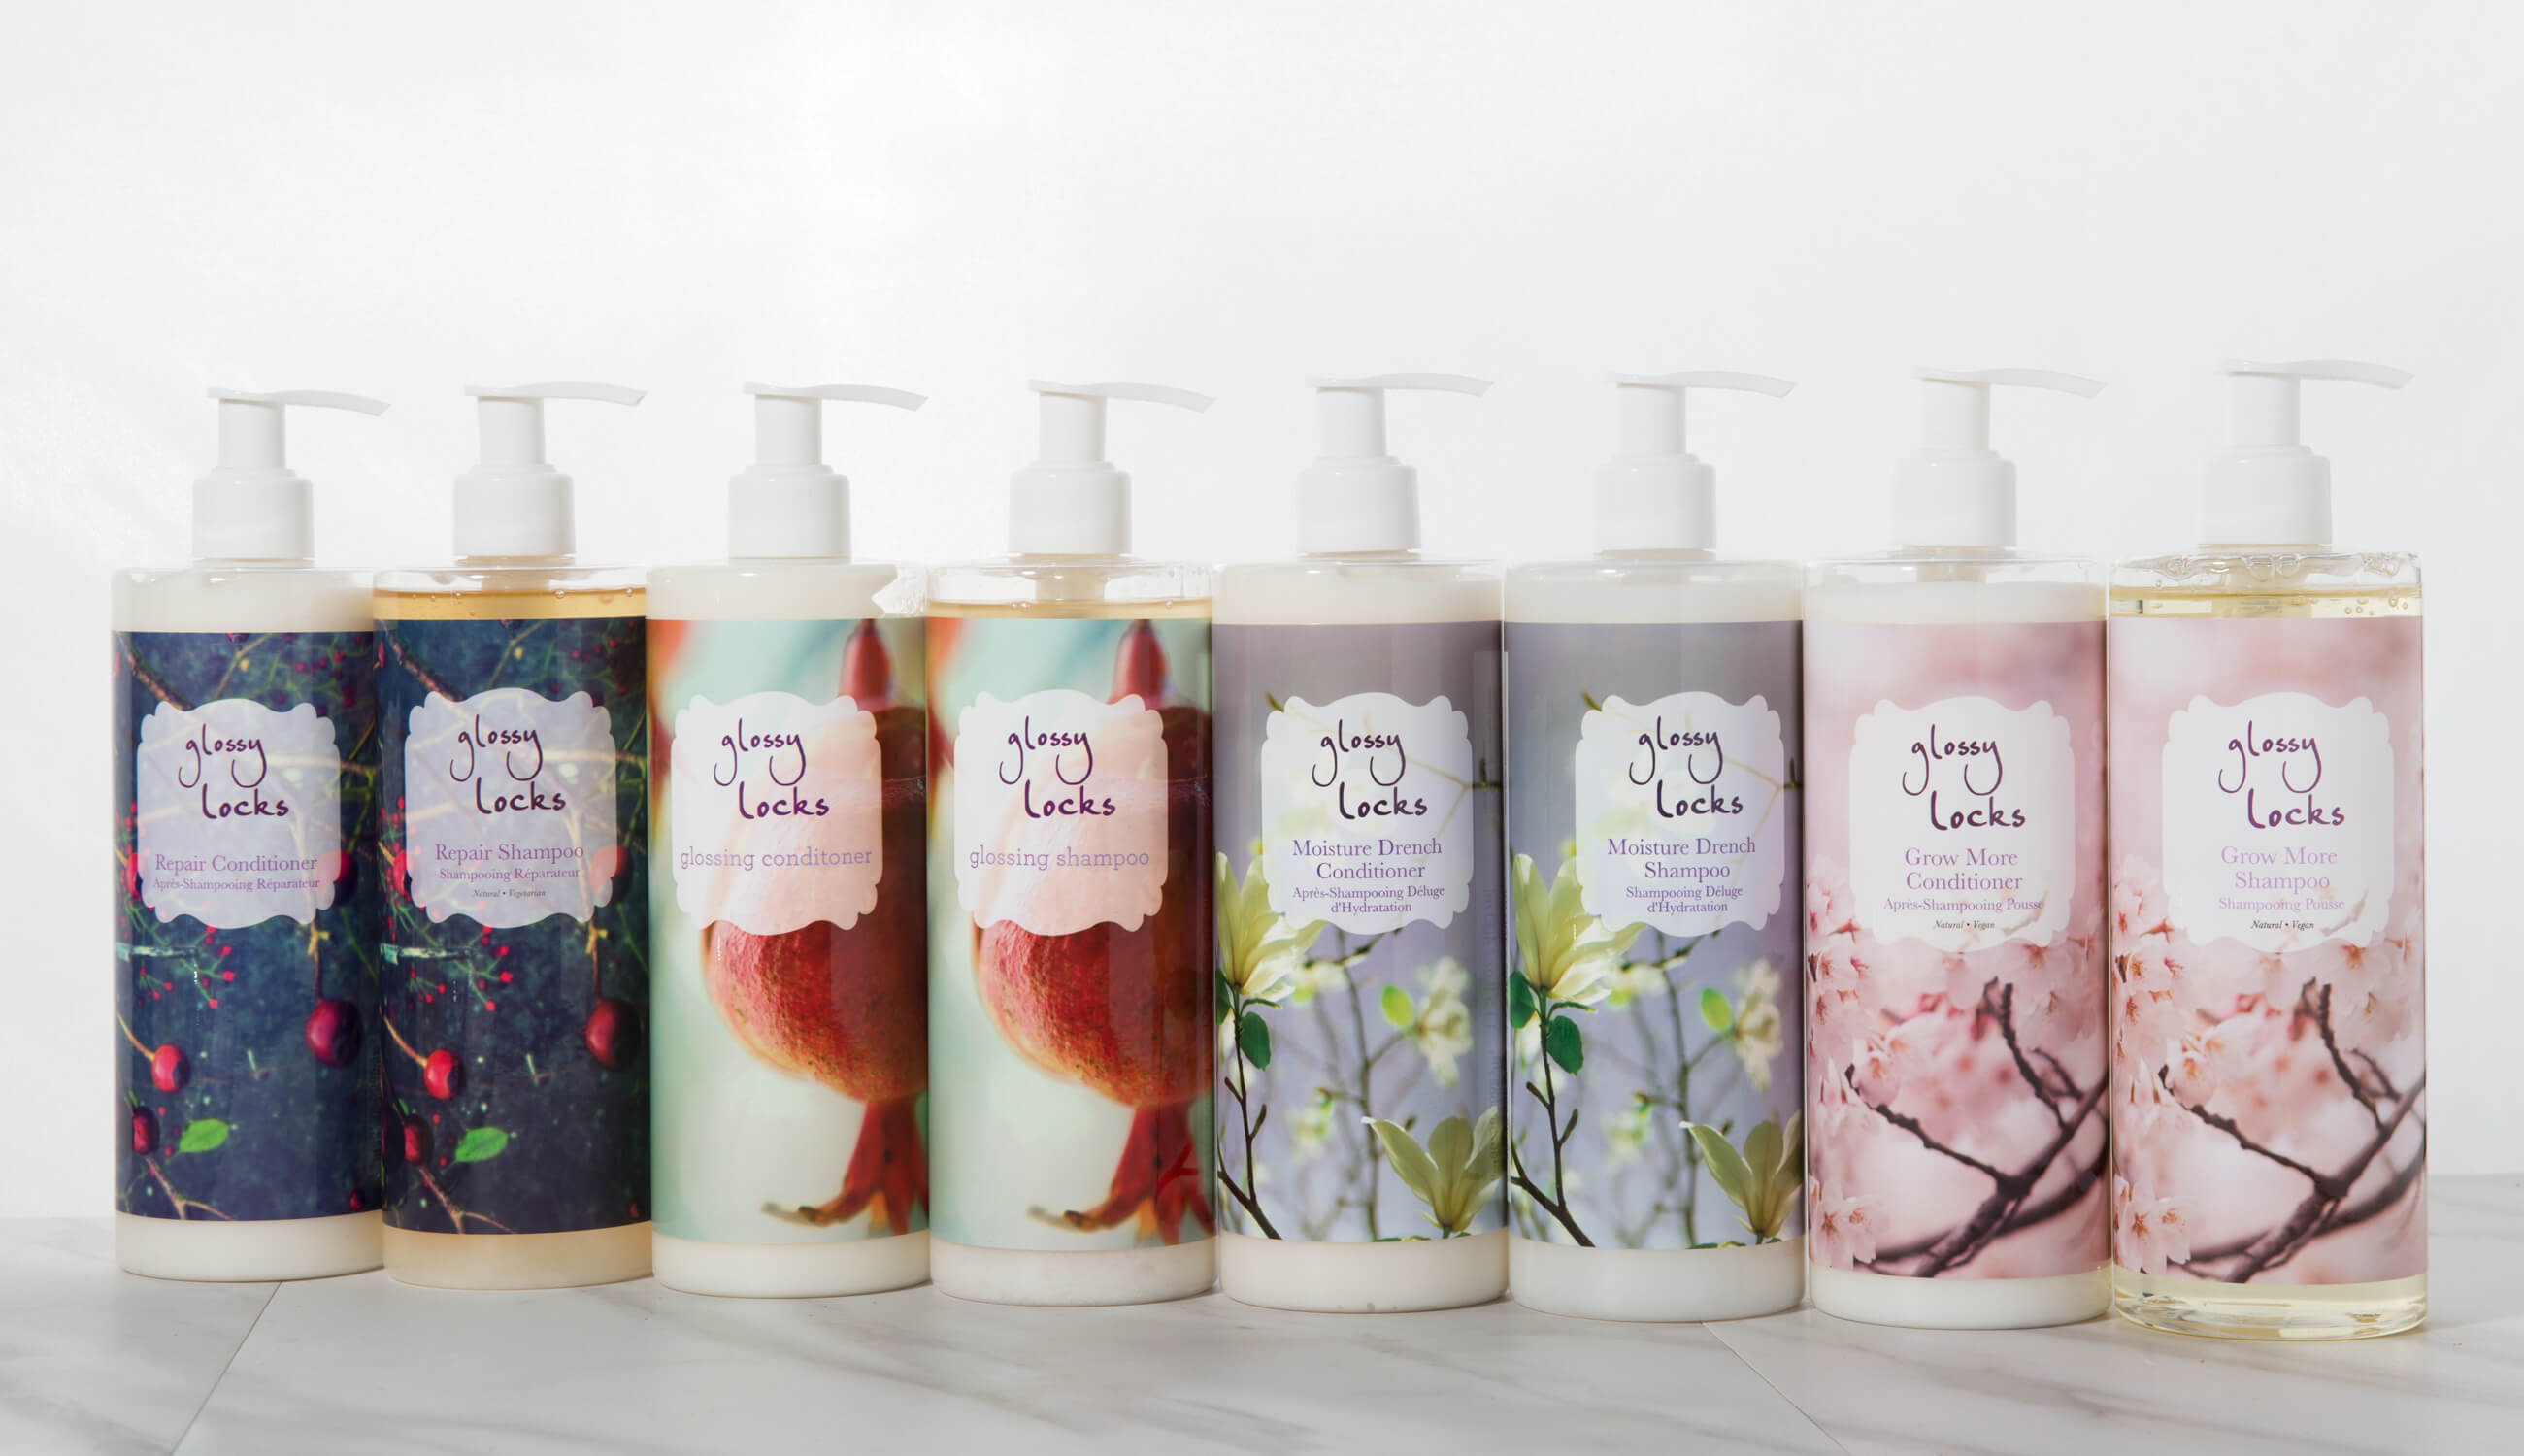 Glossy Locks Hair Product Collection